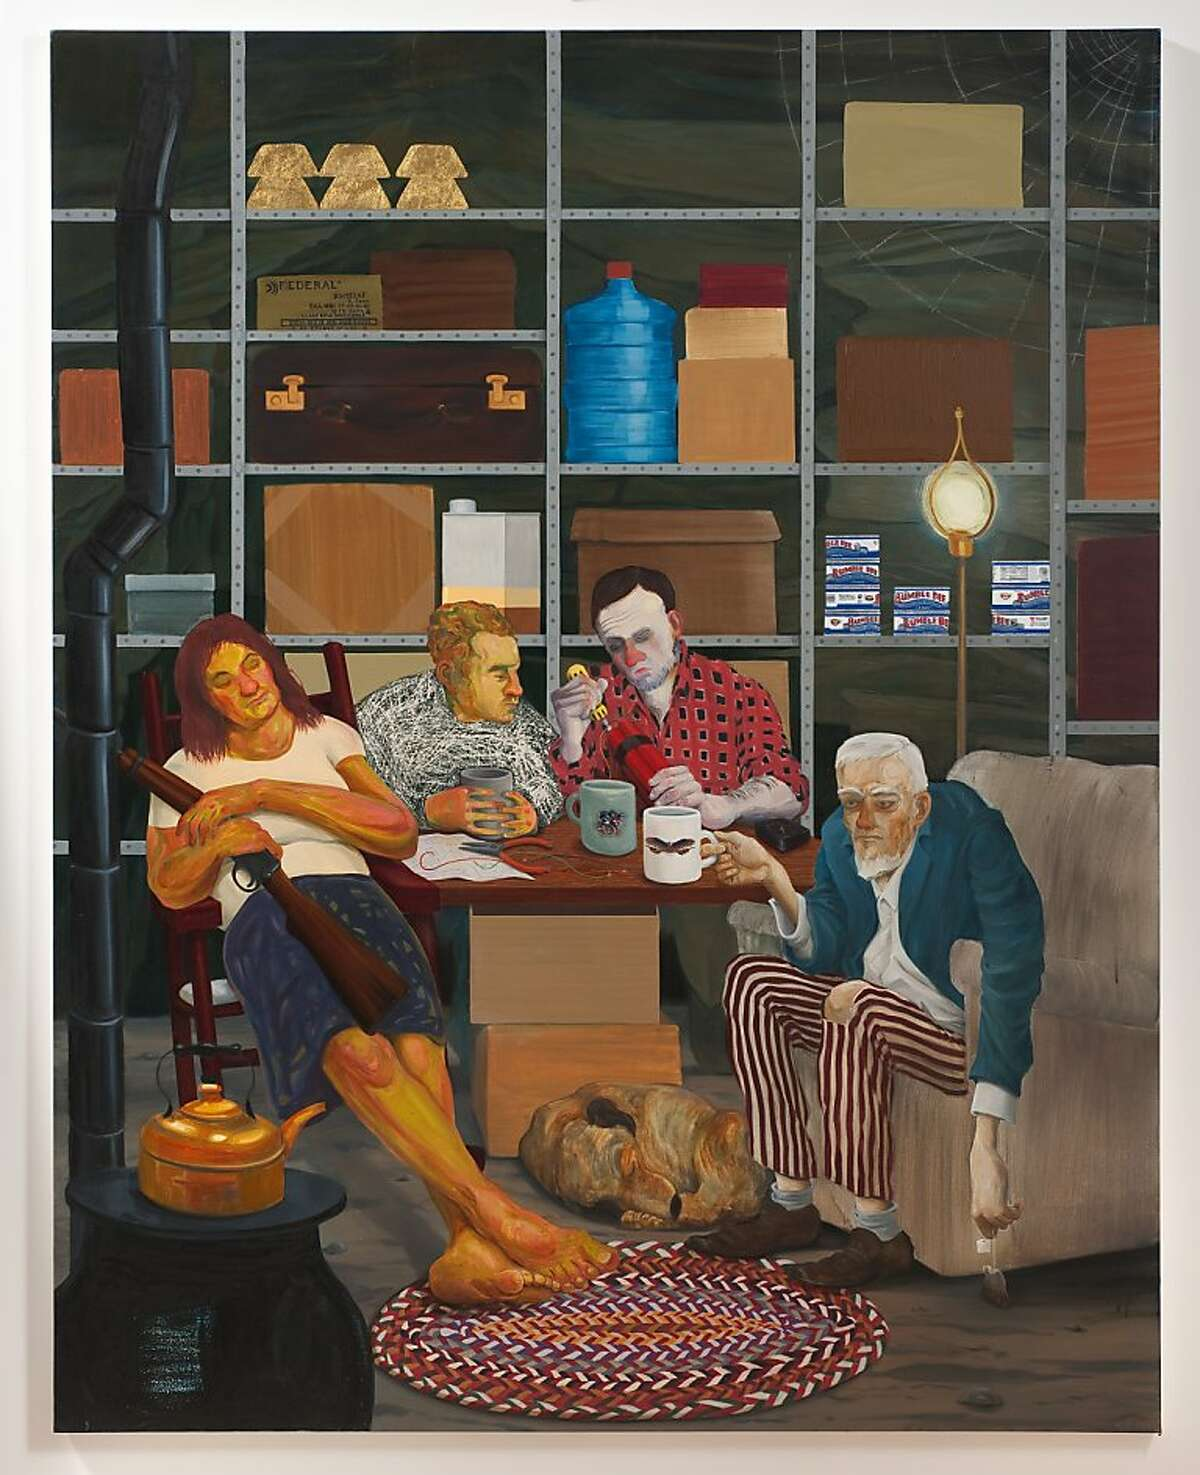 Nicole Eisenman: Tea Party Nicole Eisenman: Tea Party, 2011; oil on canvas, 82 65 in.; Hort Family Collection. Photo: Robert Wedemeyer, courtesy of Susanne Vielmetter Los Angeles Projects.